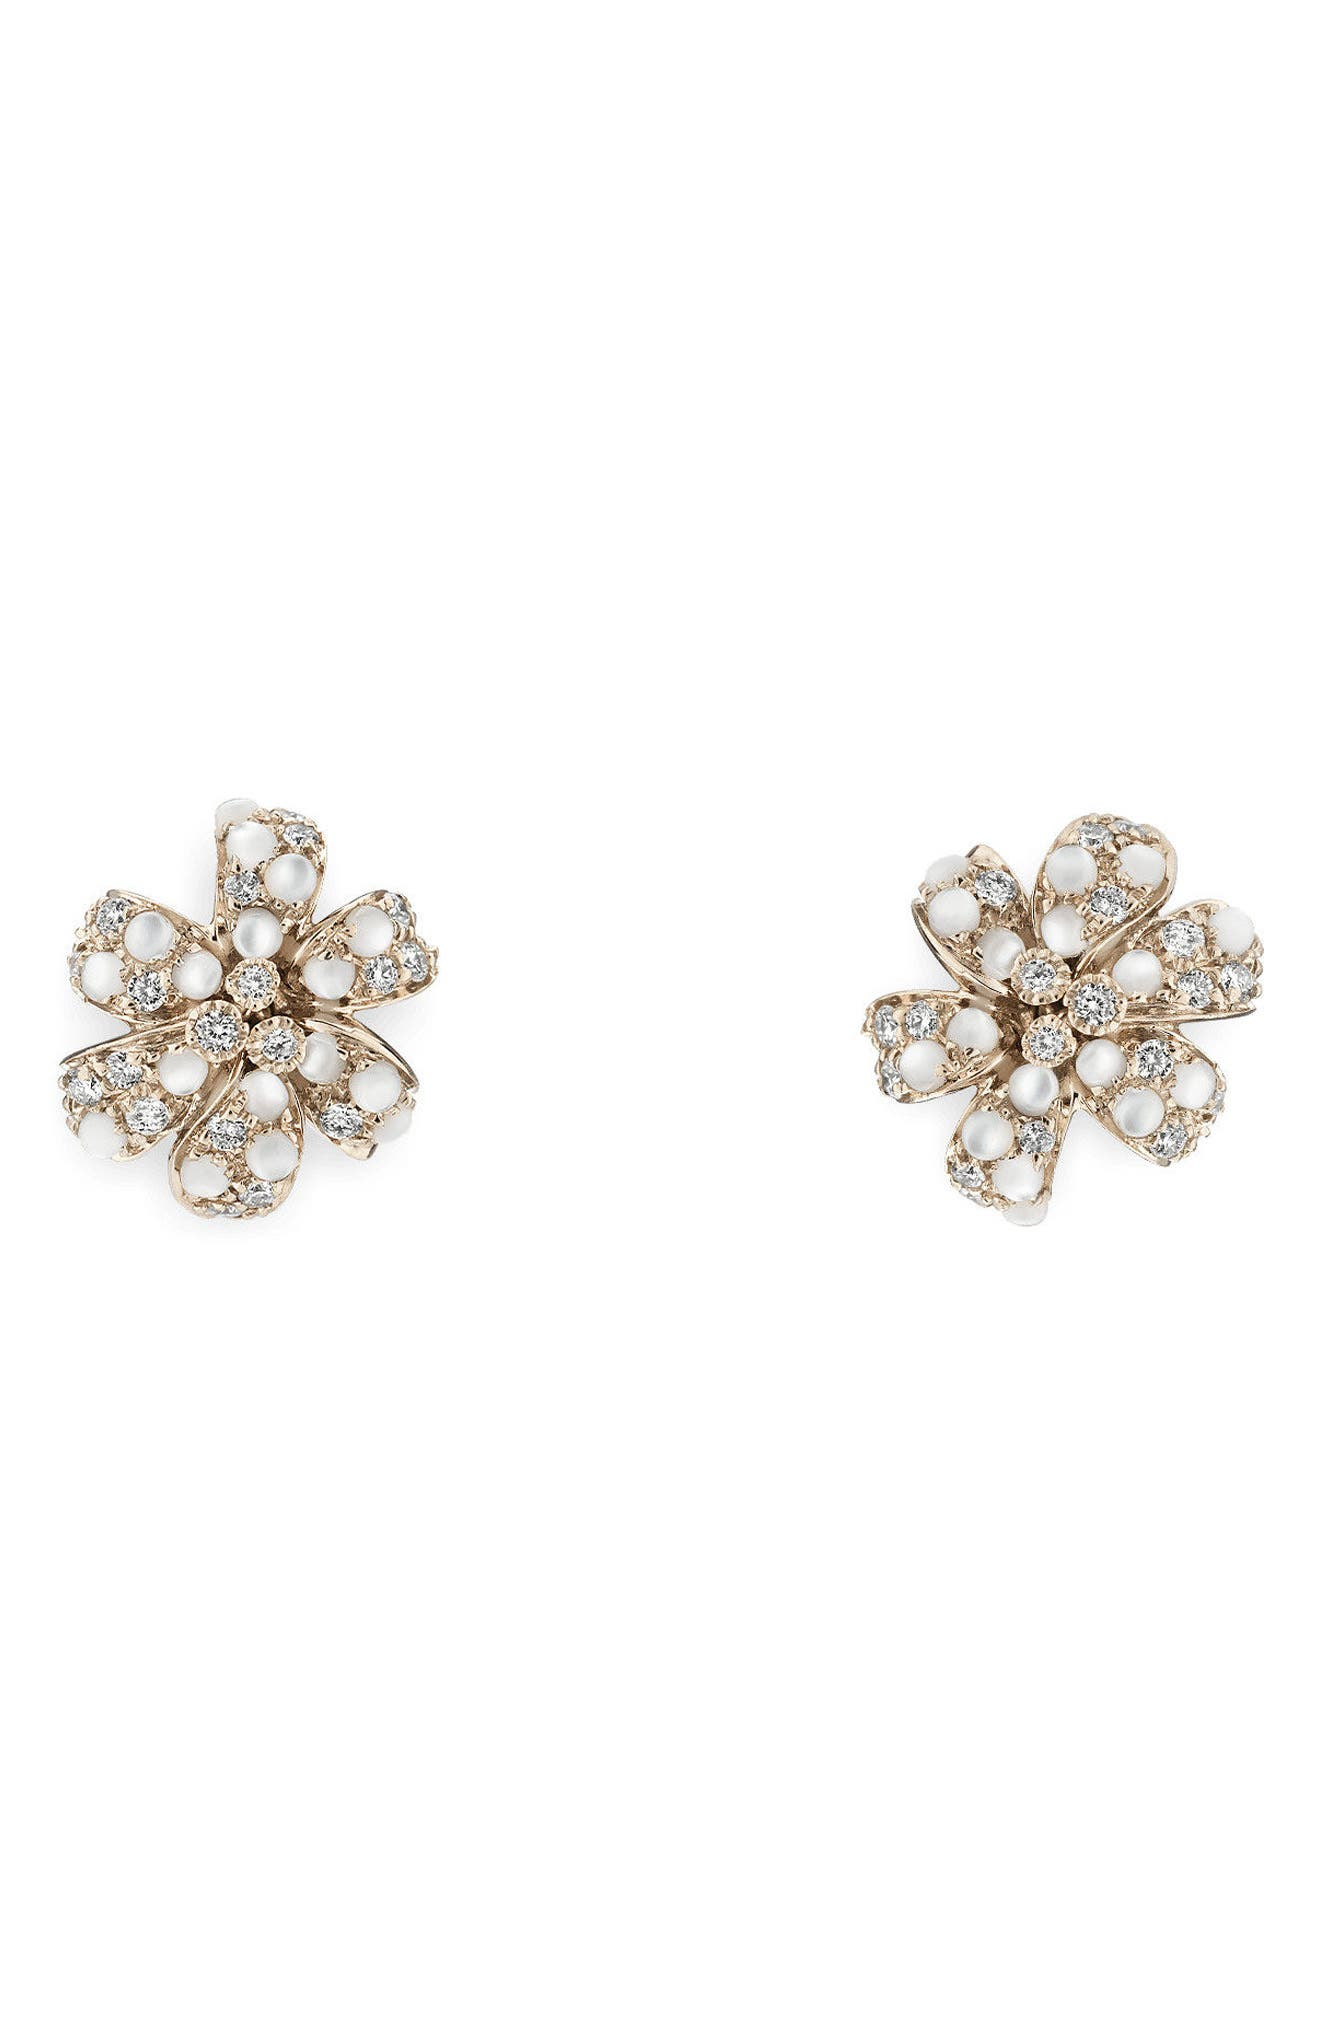 Flora Diamond & Mother of Pearl Stud Earrings,                             Main thumbnail 1, color,                             WHITE GOLD